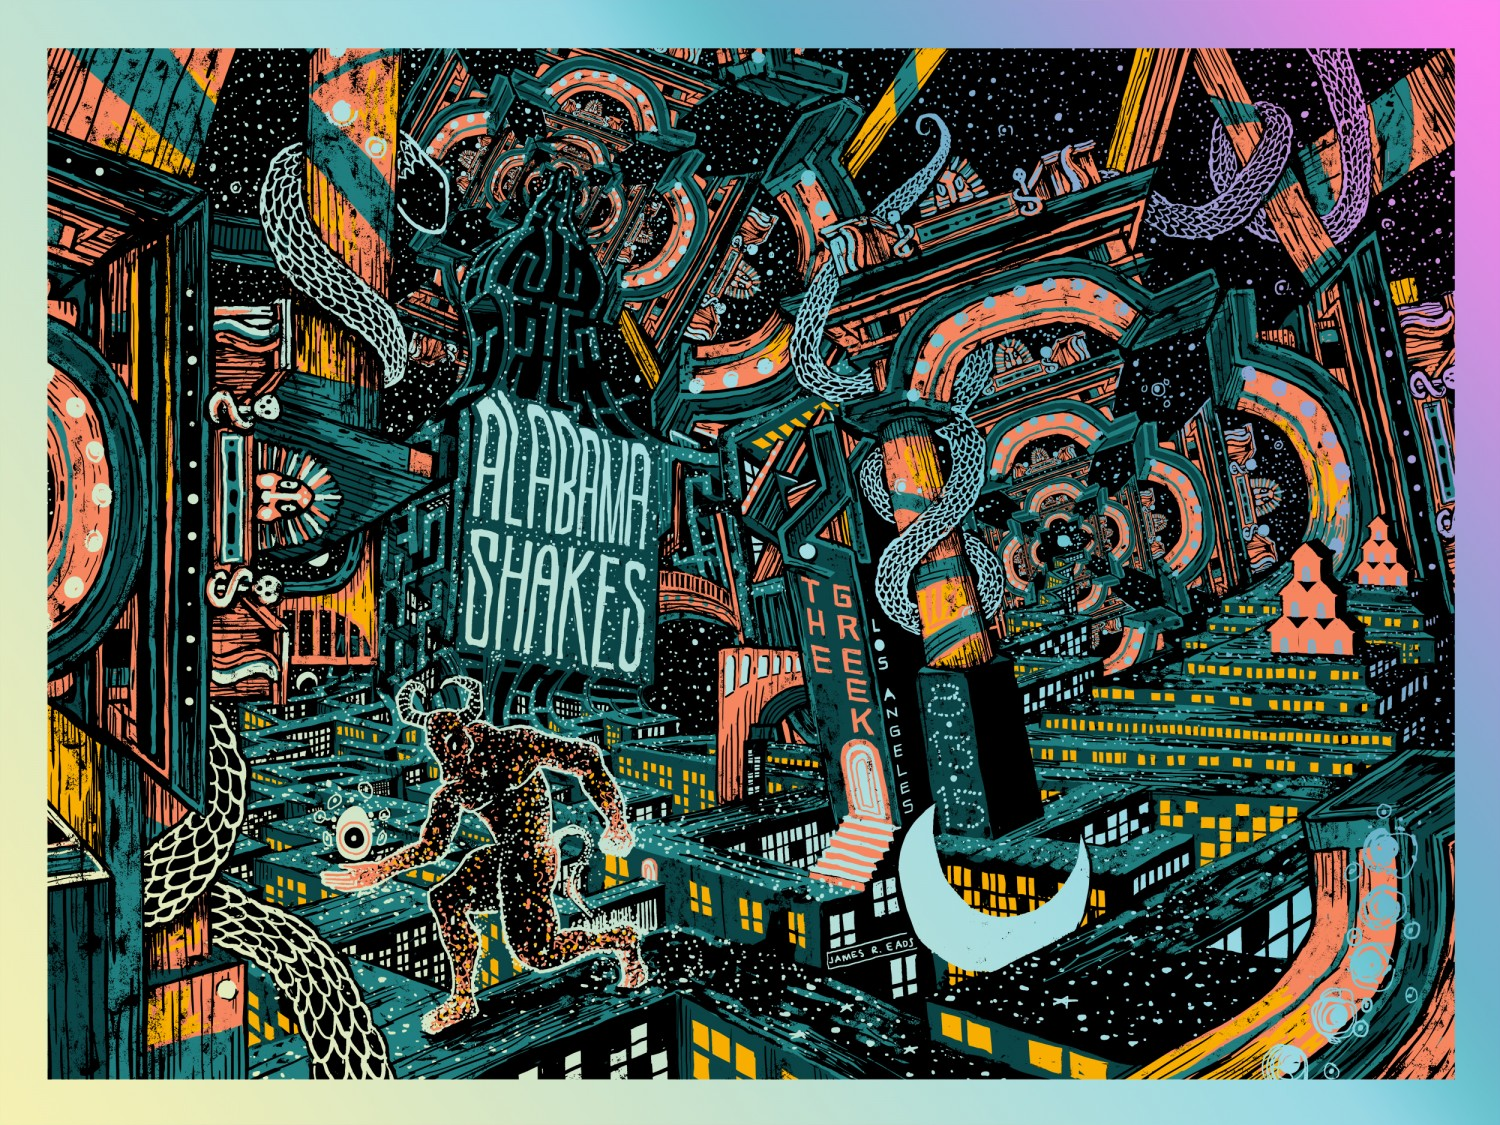 """Alabama Shakes - Los Angeles, CA 2015"" by James R Eads.  18"" x 24"" 5-color Screenprint.  AP edition of 35 S/N.  $100 (Foil)"